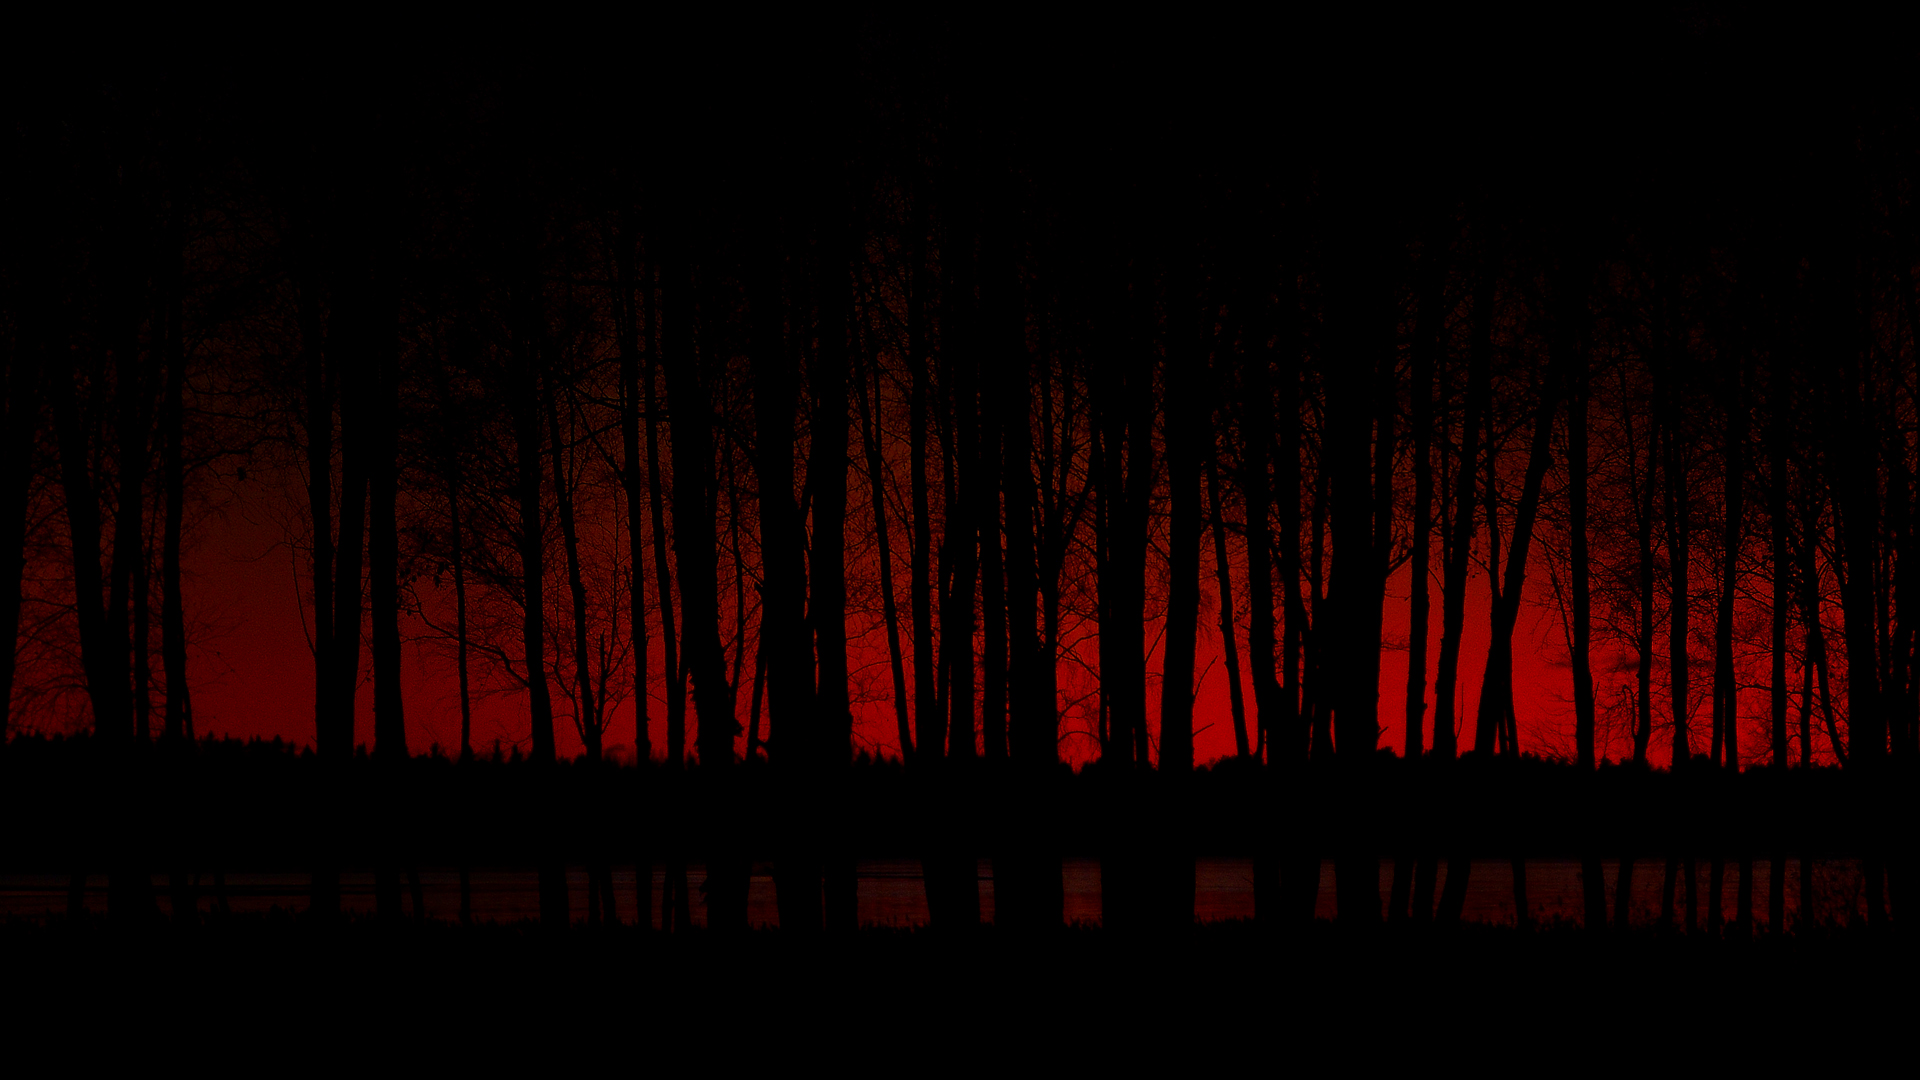 dark forest wallpaper hd wallpapersafari